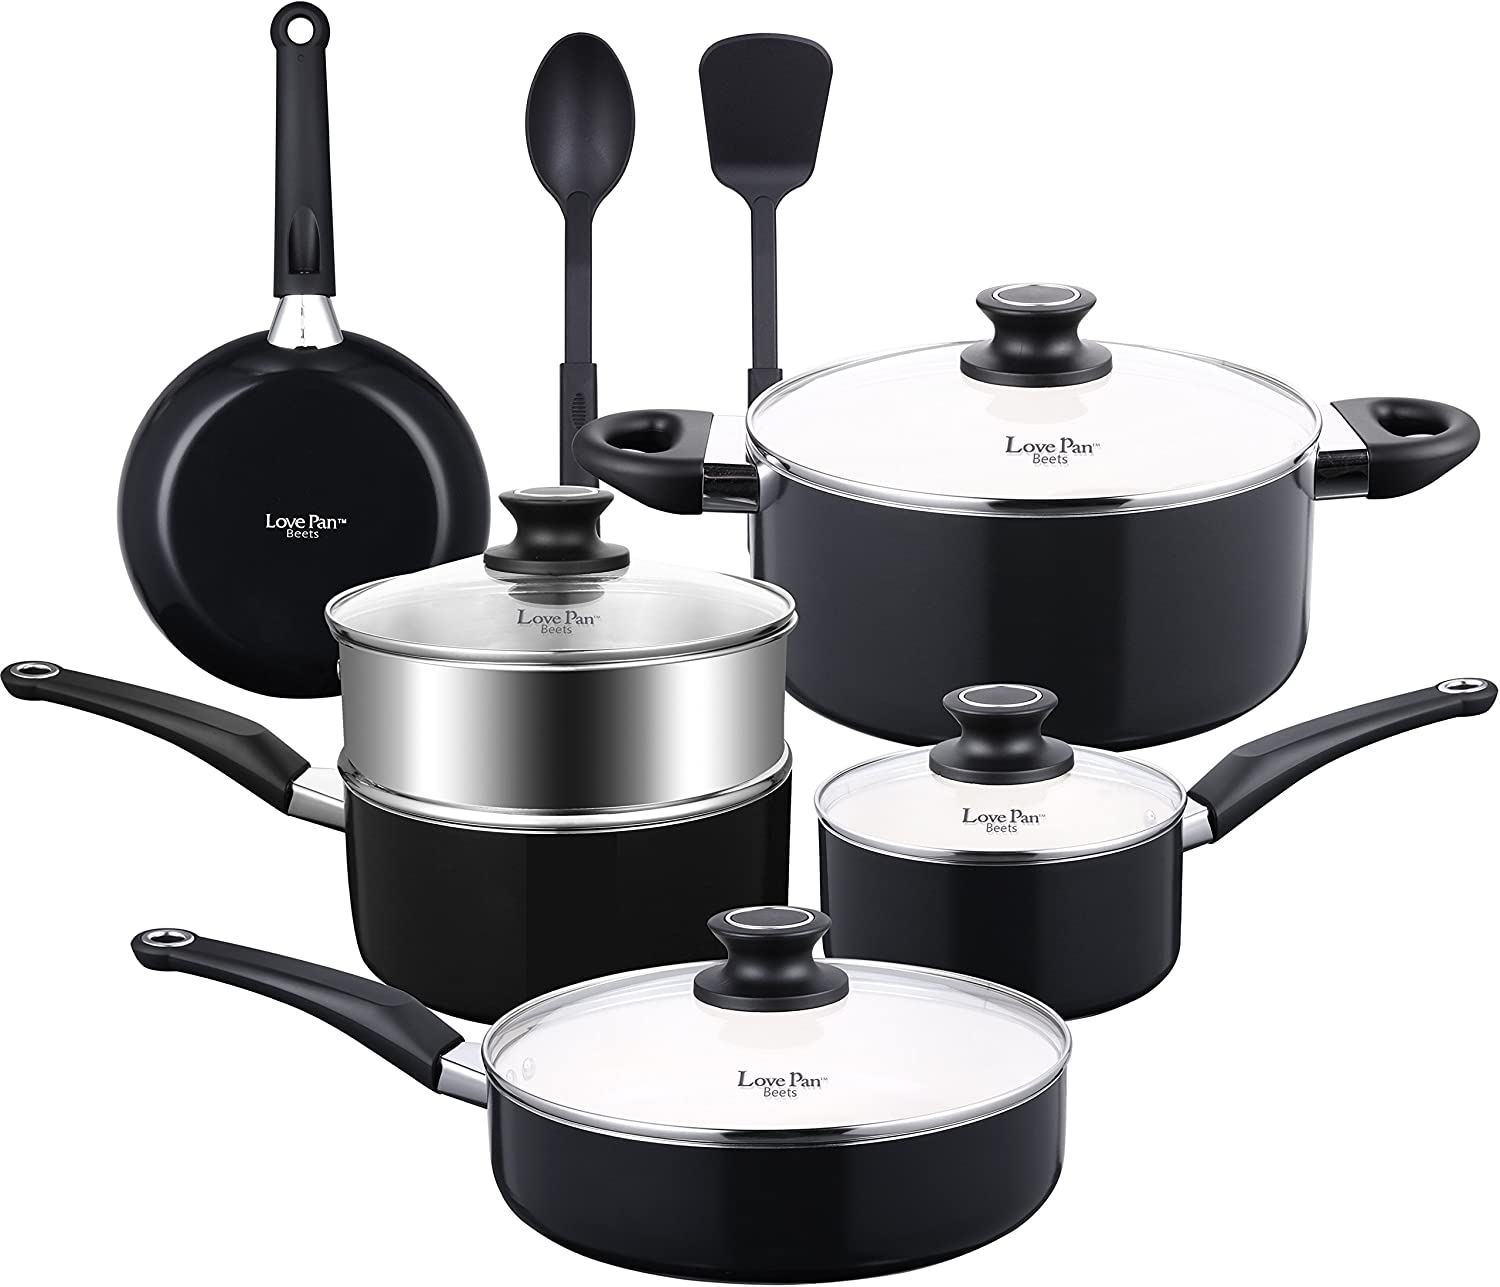 Cook Code Pots and Pans, White Ceramic Coating Nonstick Aluminum Cookware Set with Glass Lids and Nylon Utensils, Sauce Pan with Steamer PTFE, PFOA Free, 12-PCS Black